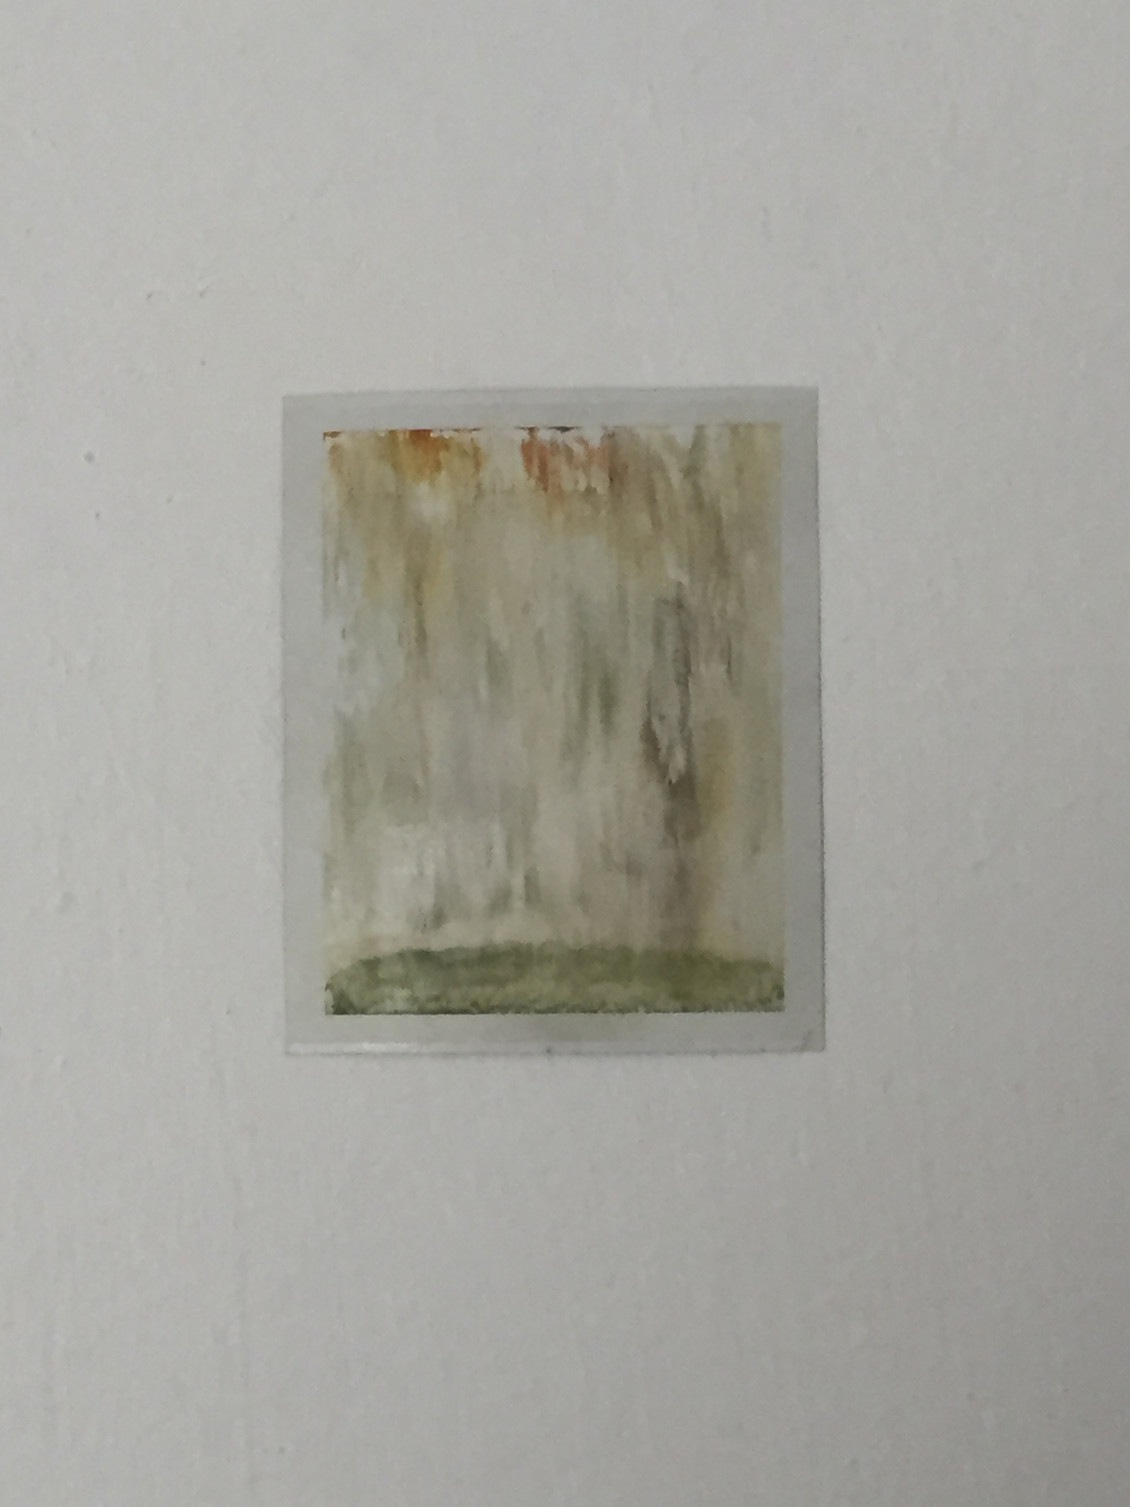 Combustion, 2013   Developing emulsion on photographic paper   10.5 x 8.5 cm